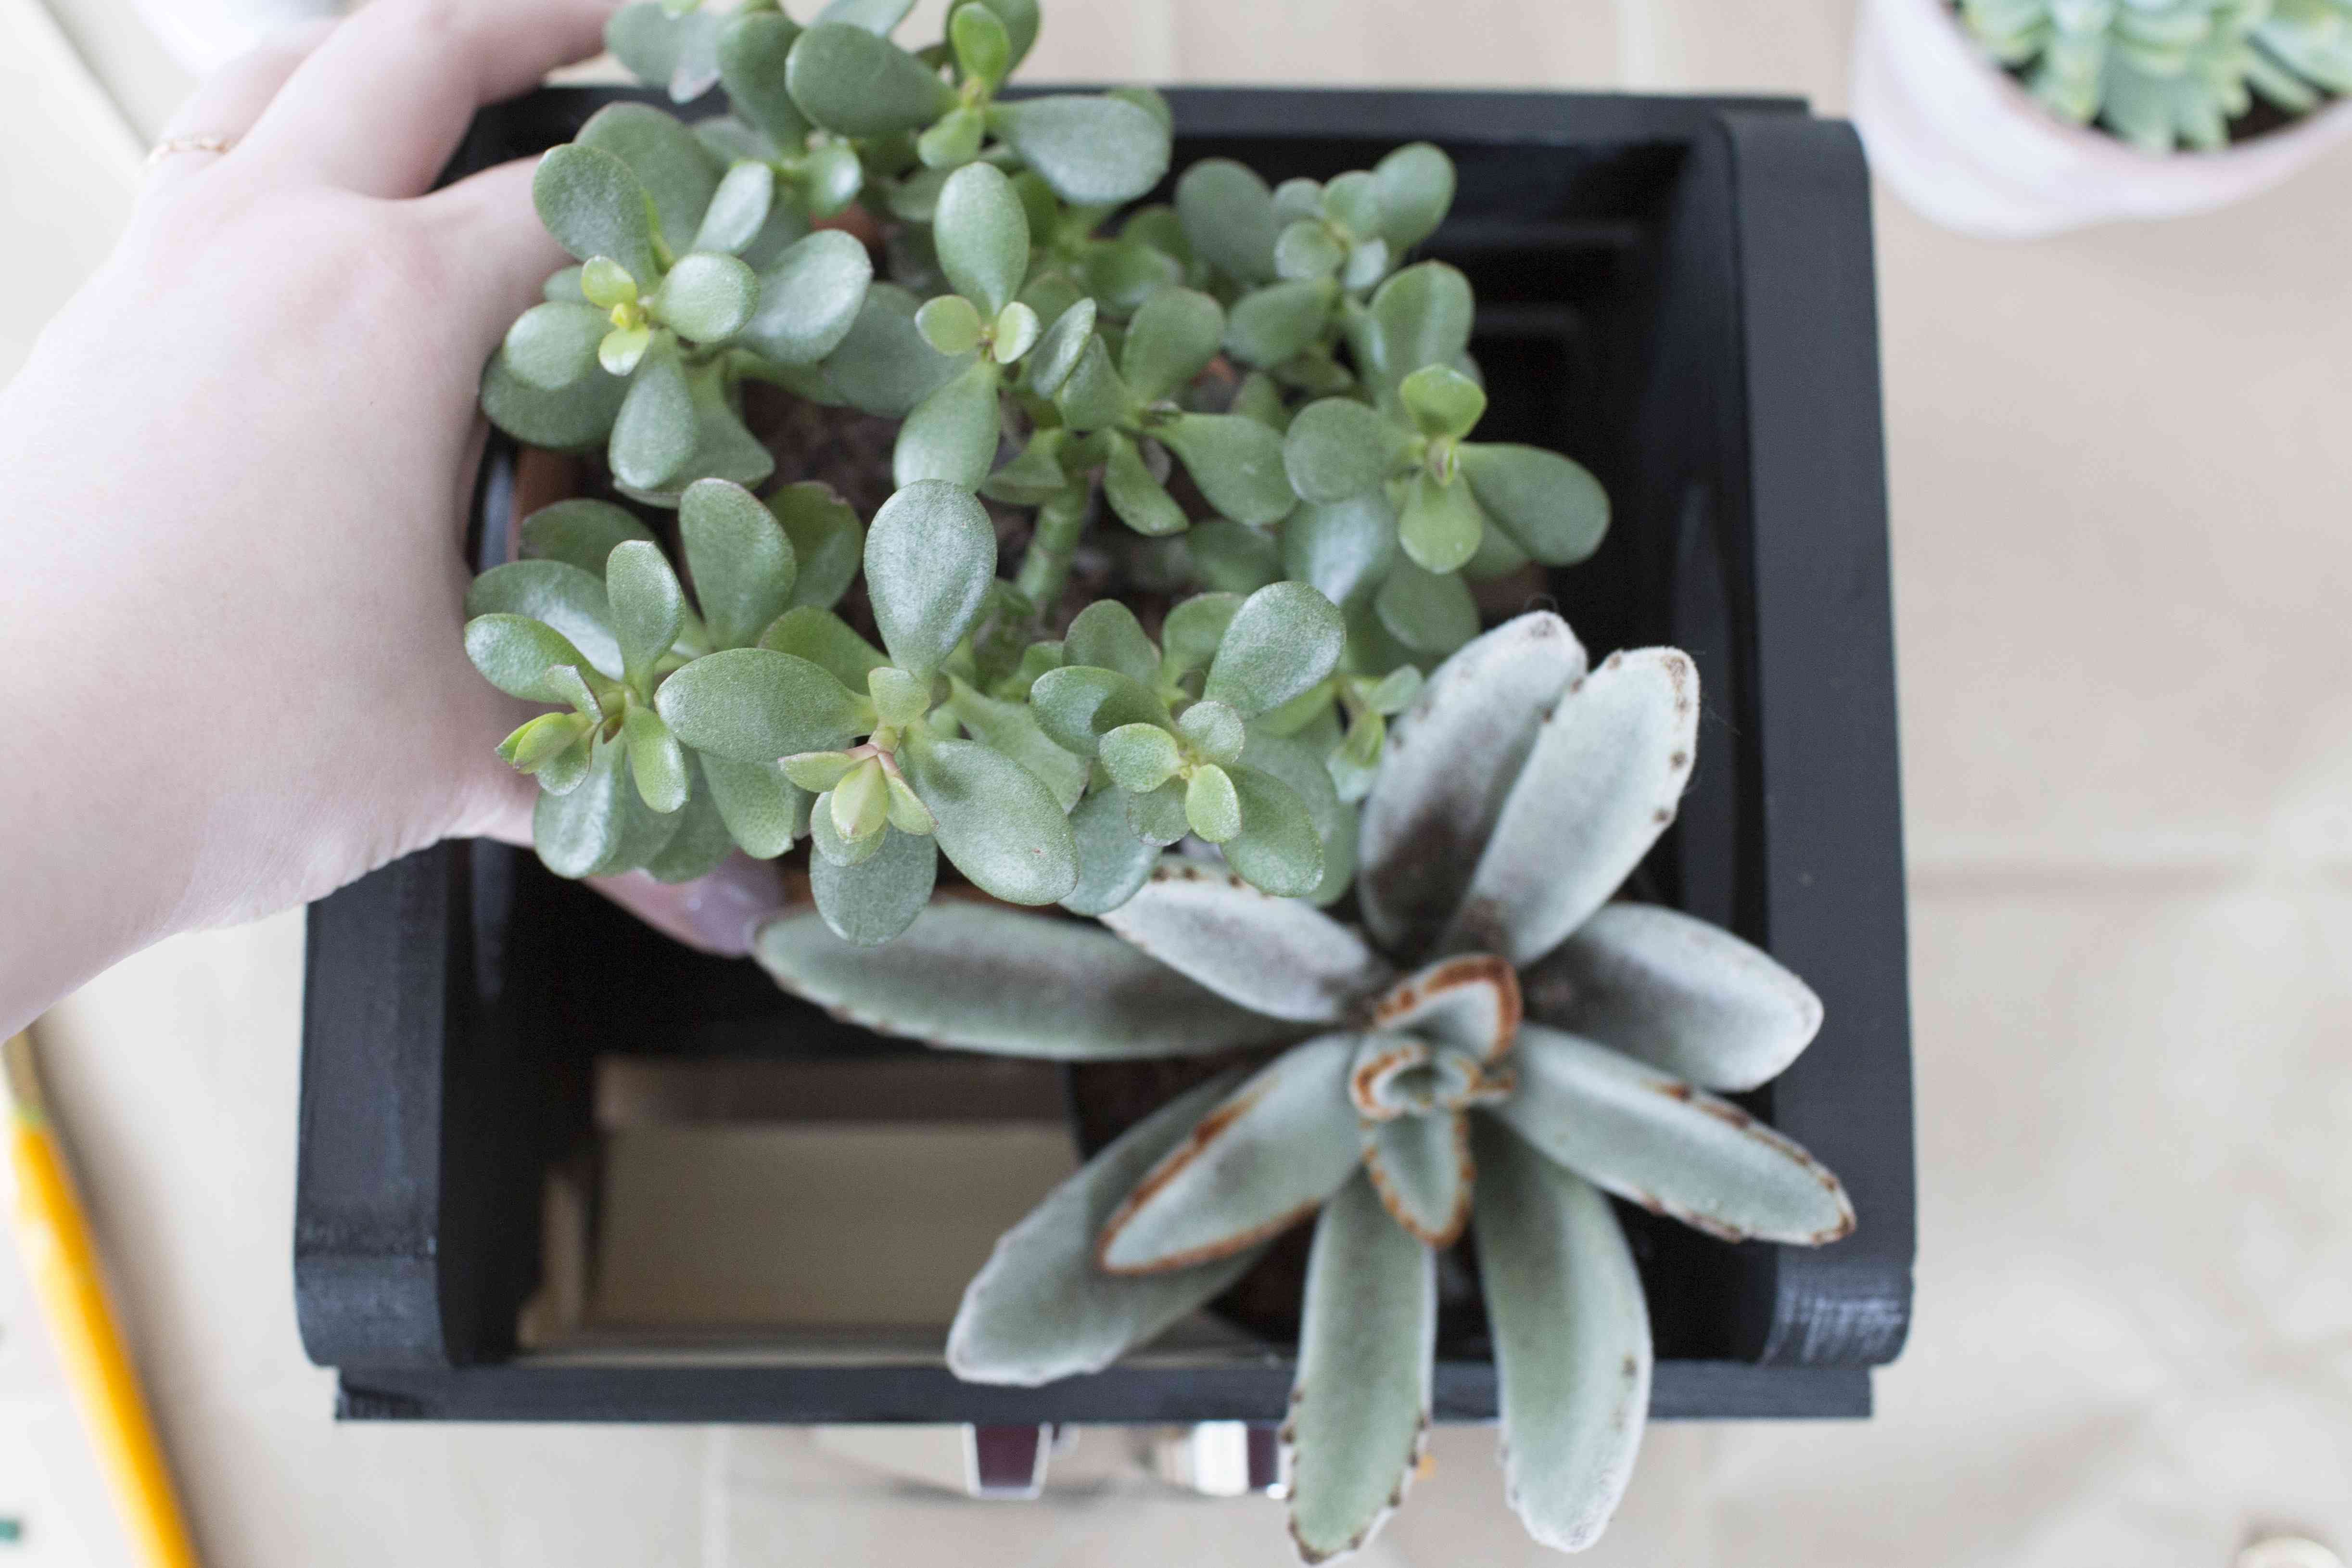 A hand placing succulents into a small black painted wooden crate